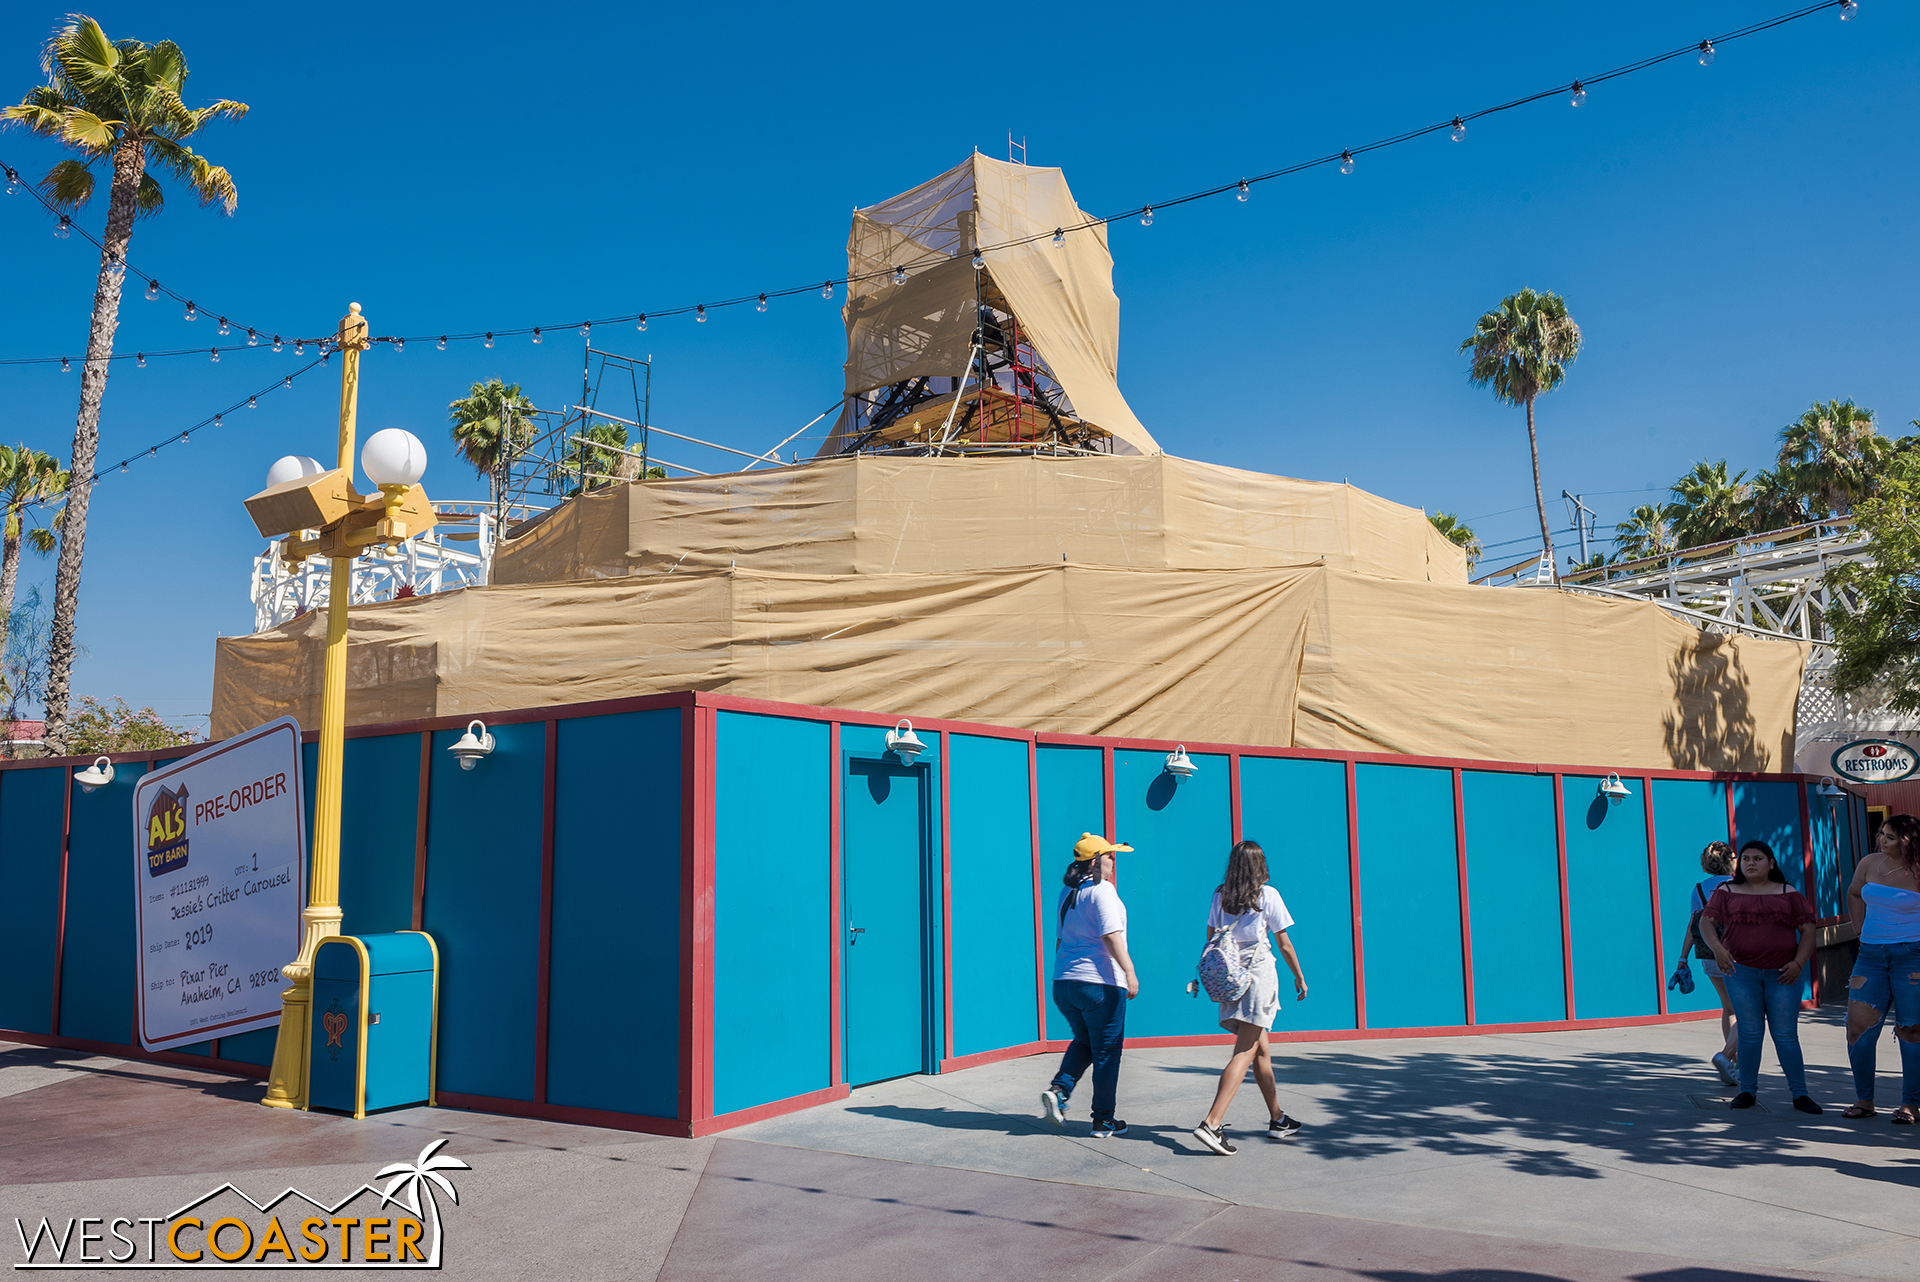 Despite the hot summer, the carousel is being covered up more and more, left to swelter in the sun.